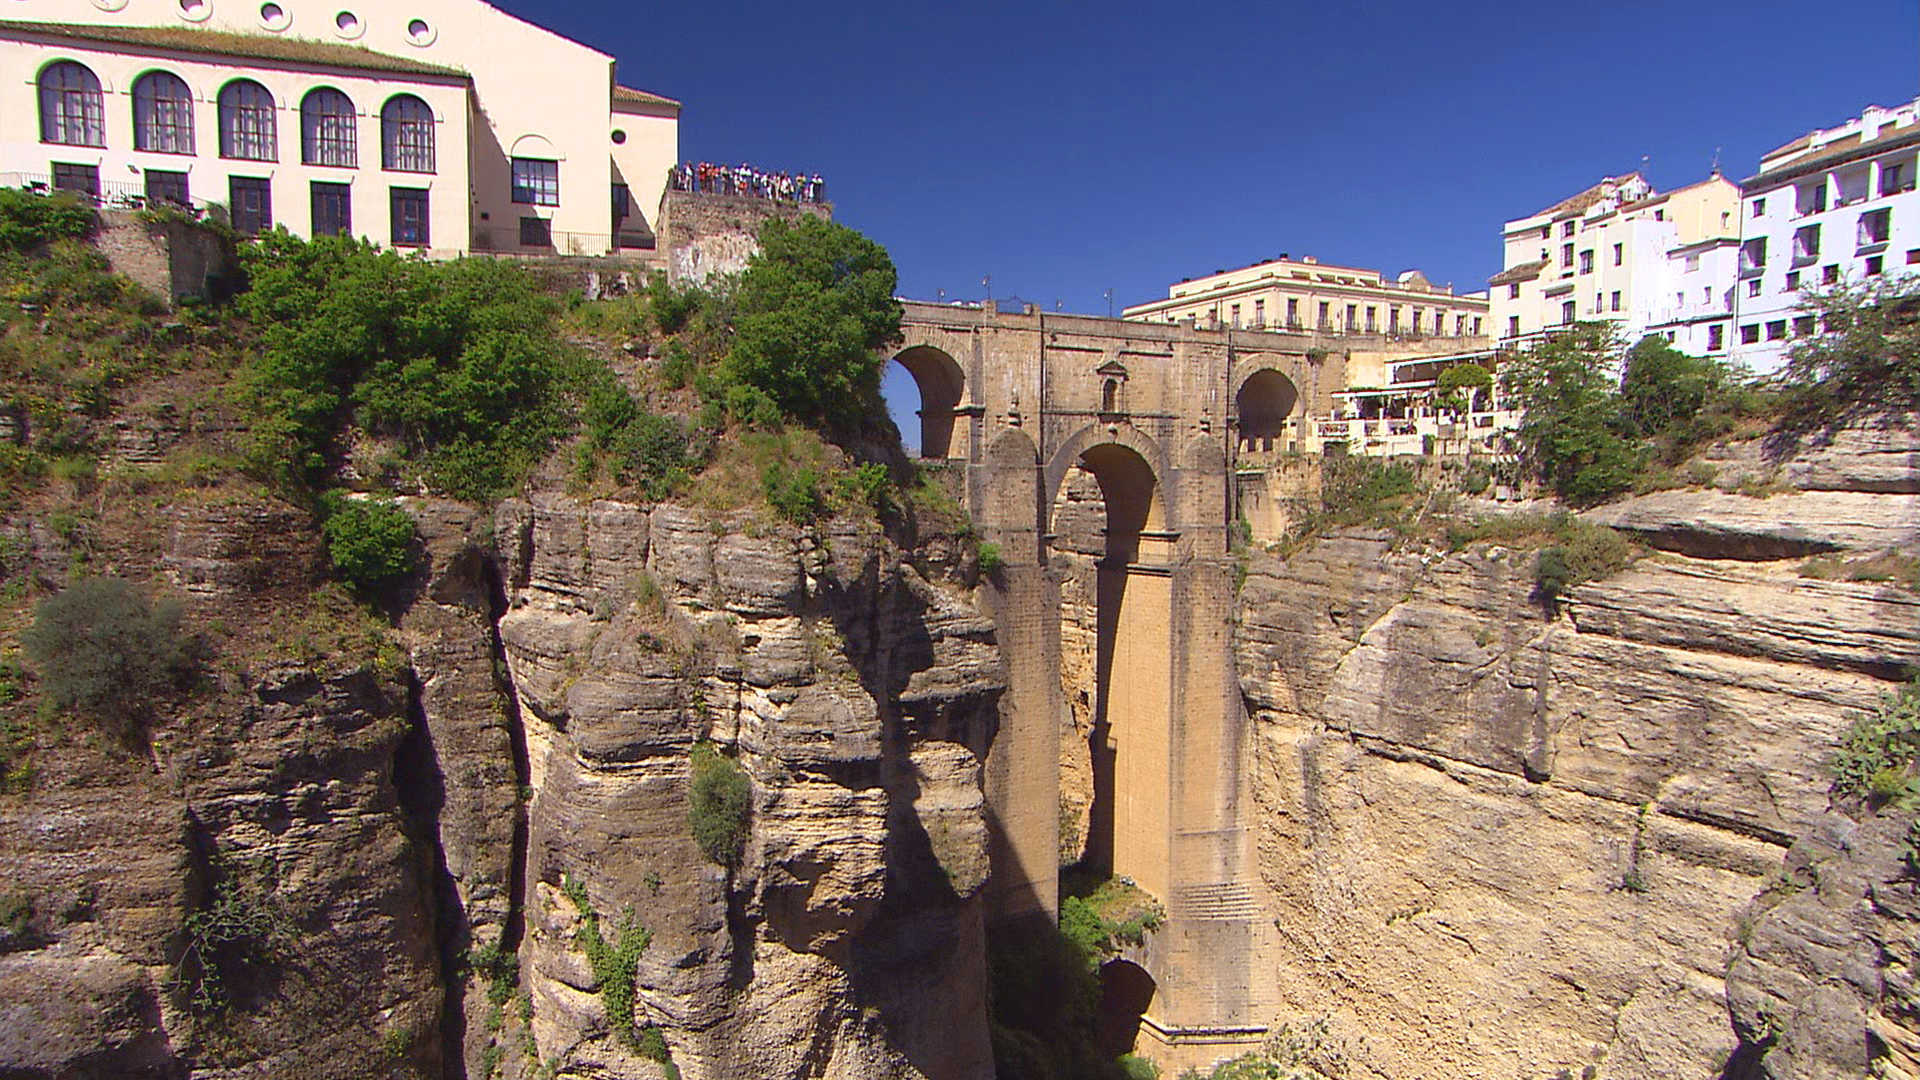 The bridge in Ronda